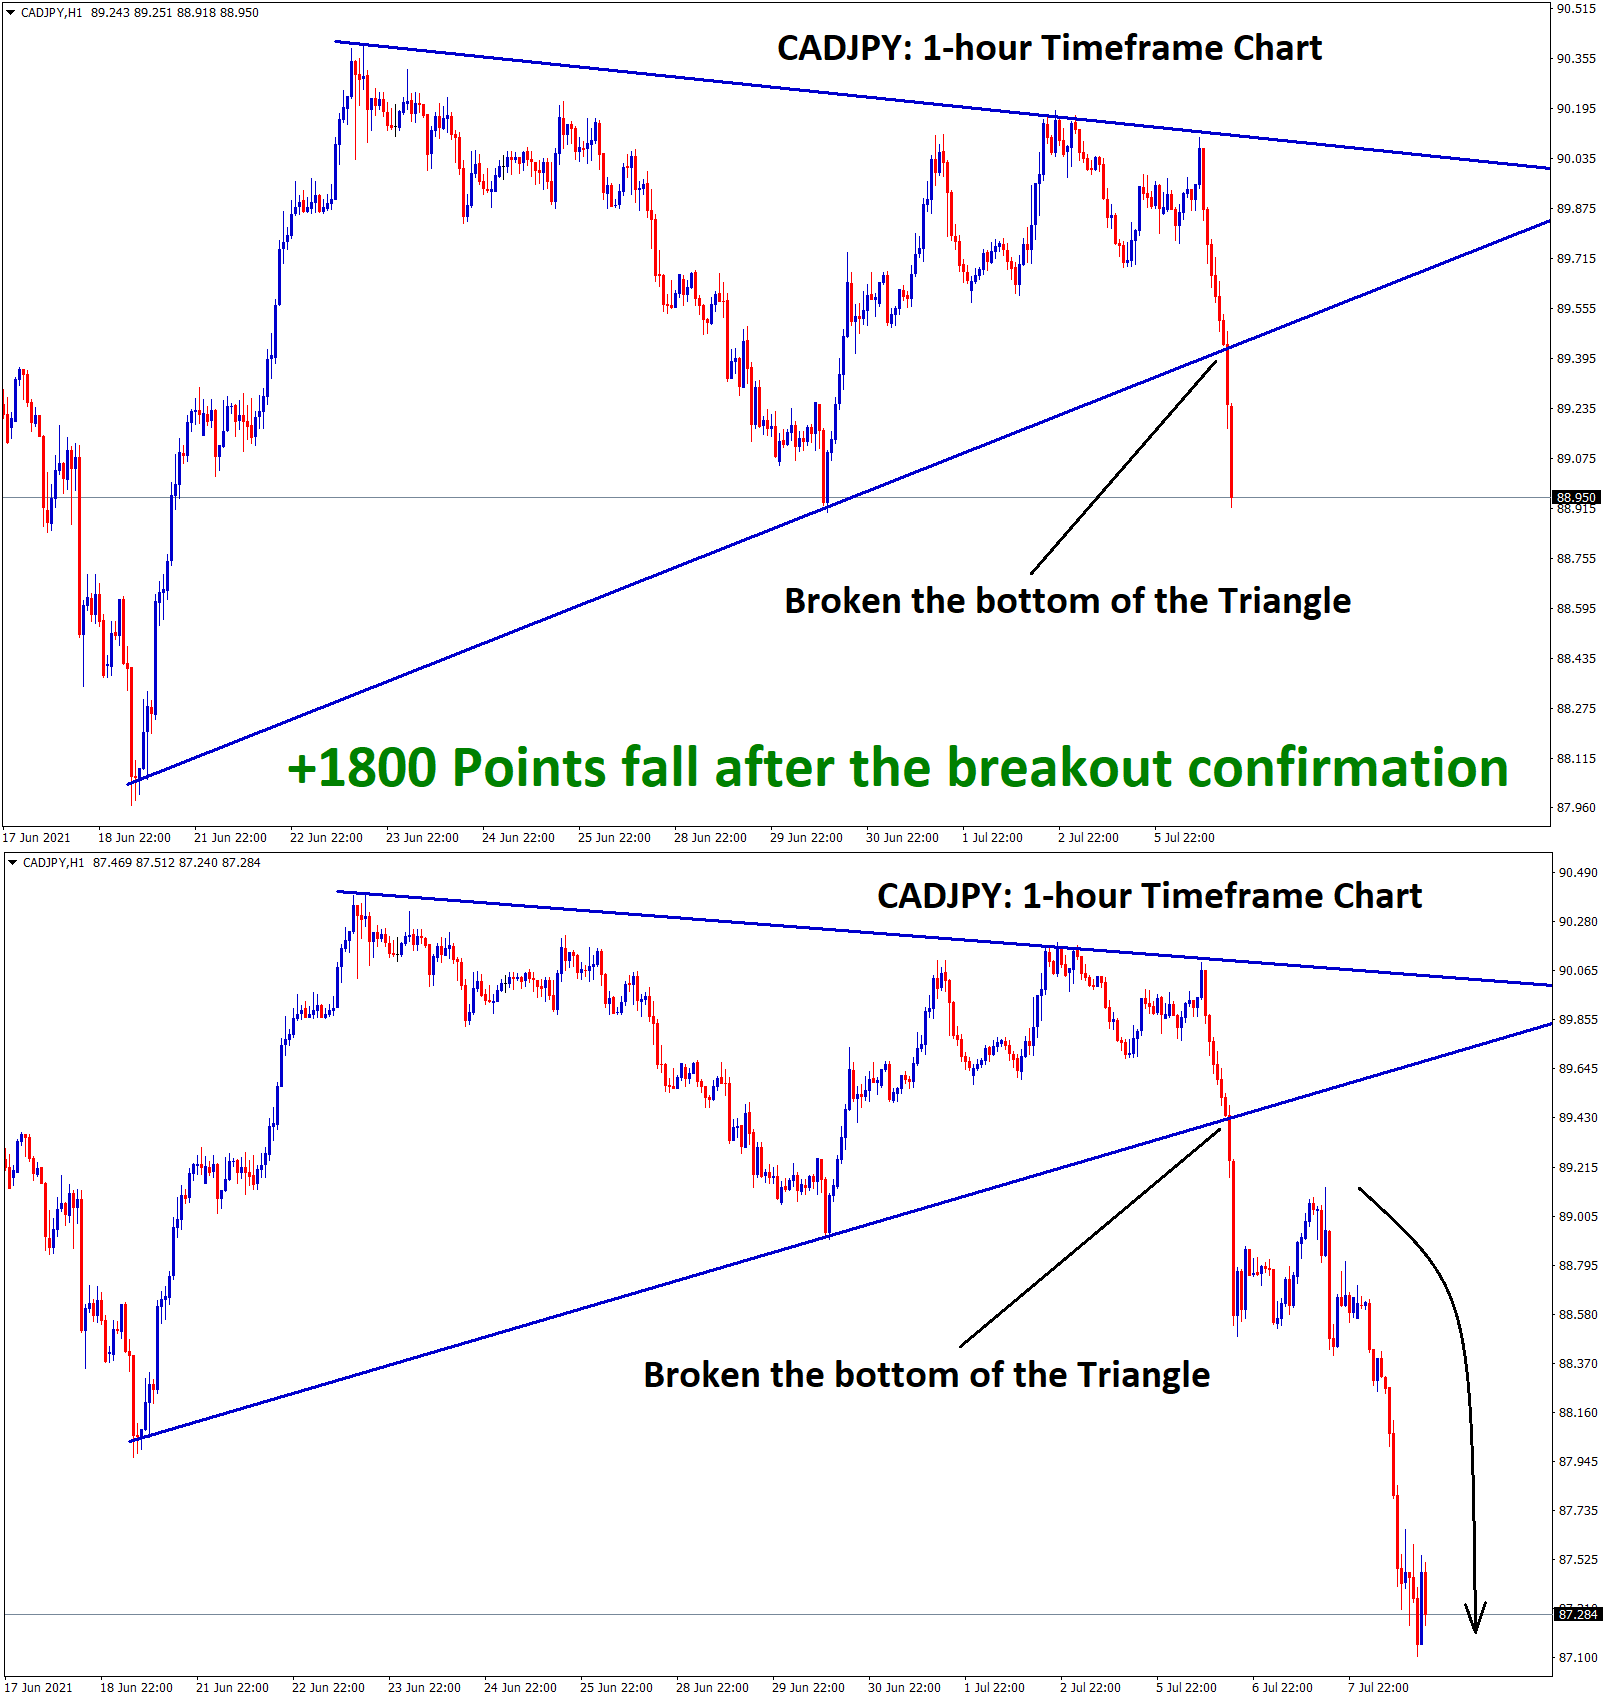 1800 Points fall after the breakout confirmation of triangle pattern in cadjpy